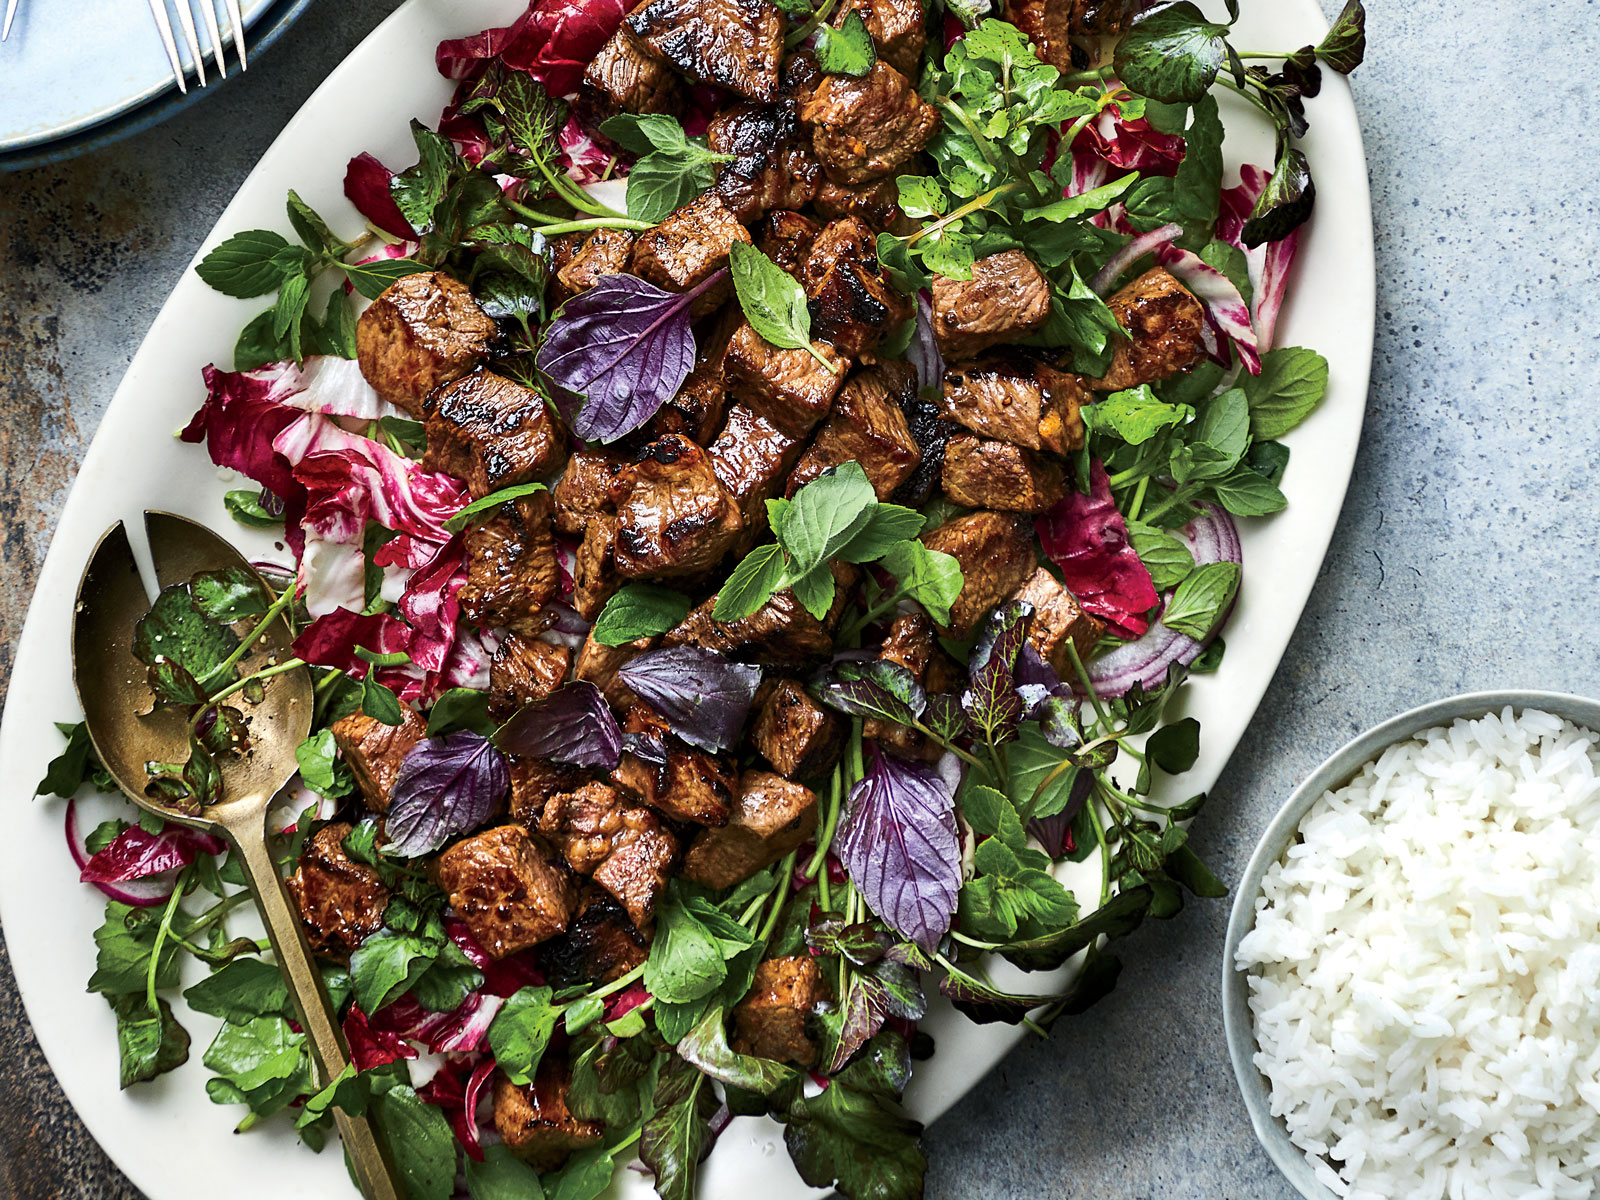 This Quick Vietnamese Beef Dish Is Our New Go-To Weeknight Dinner